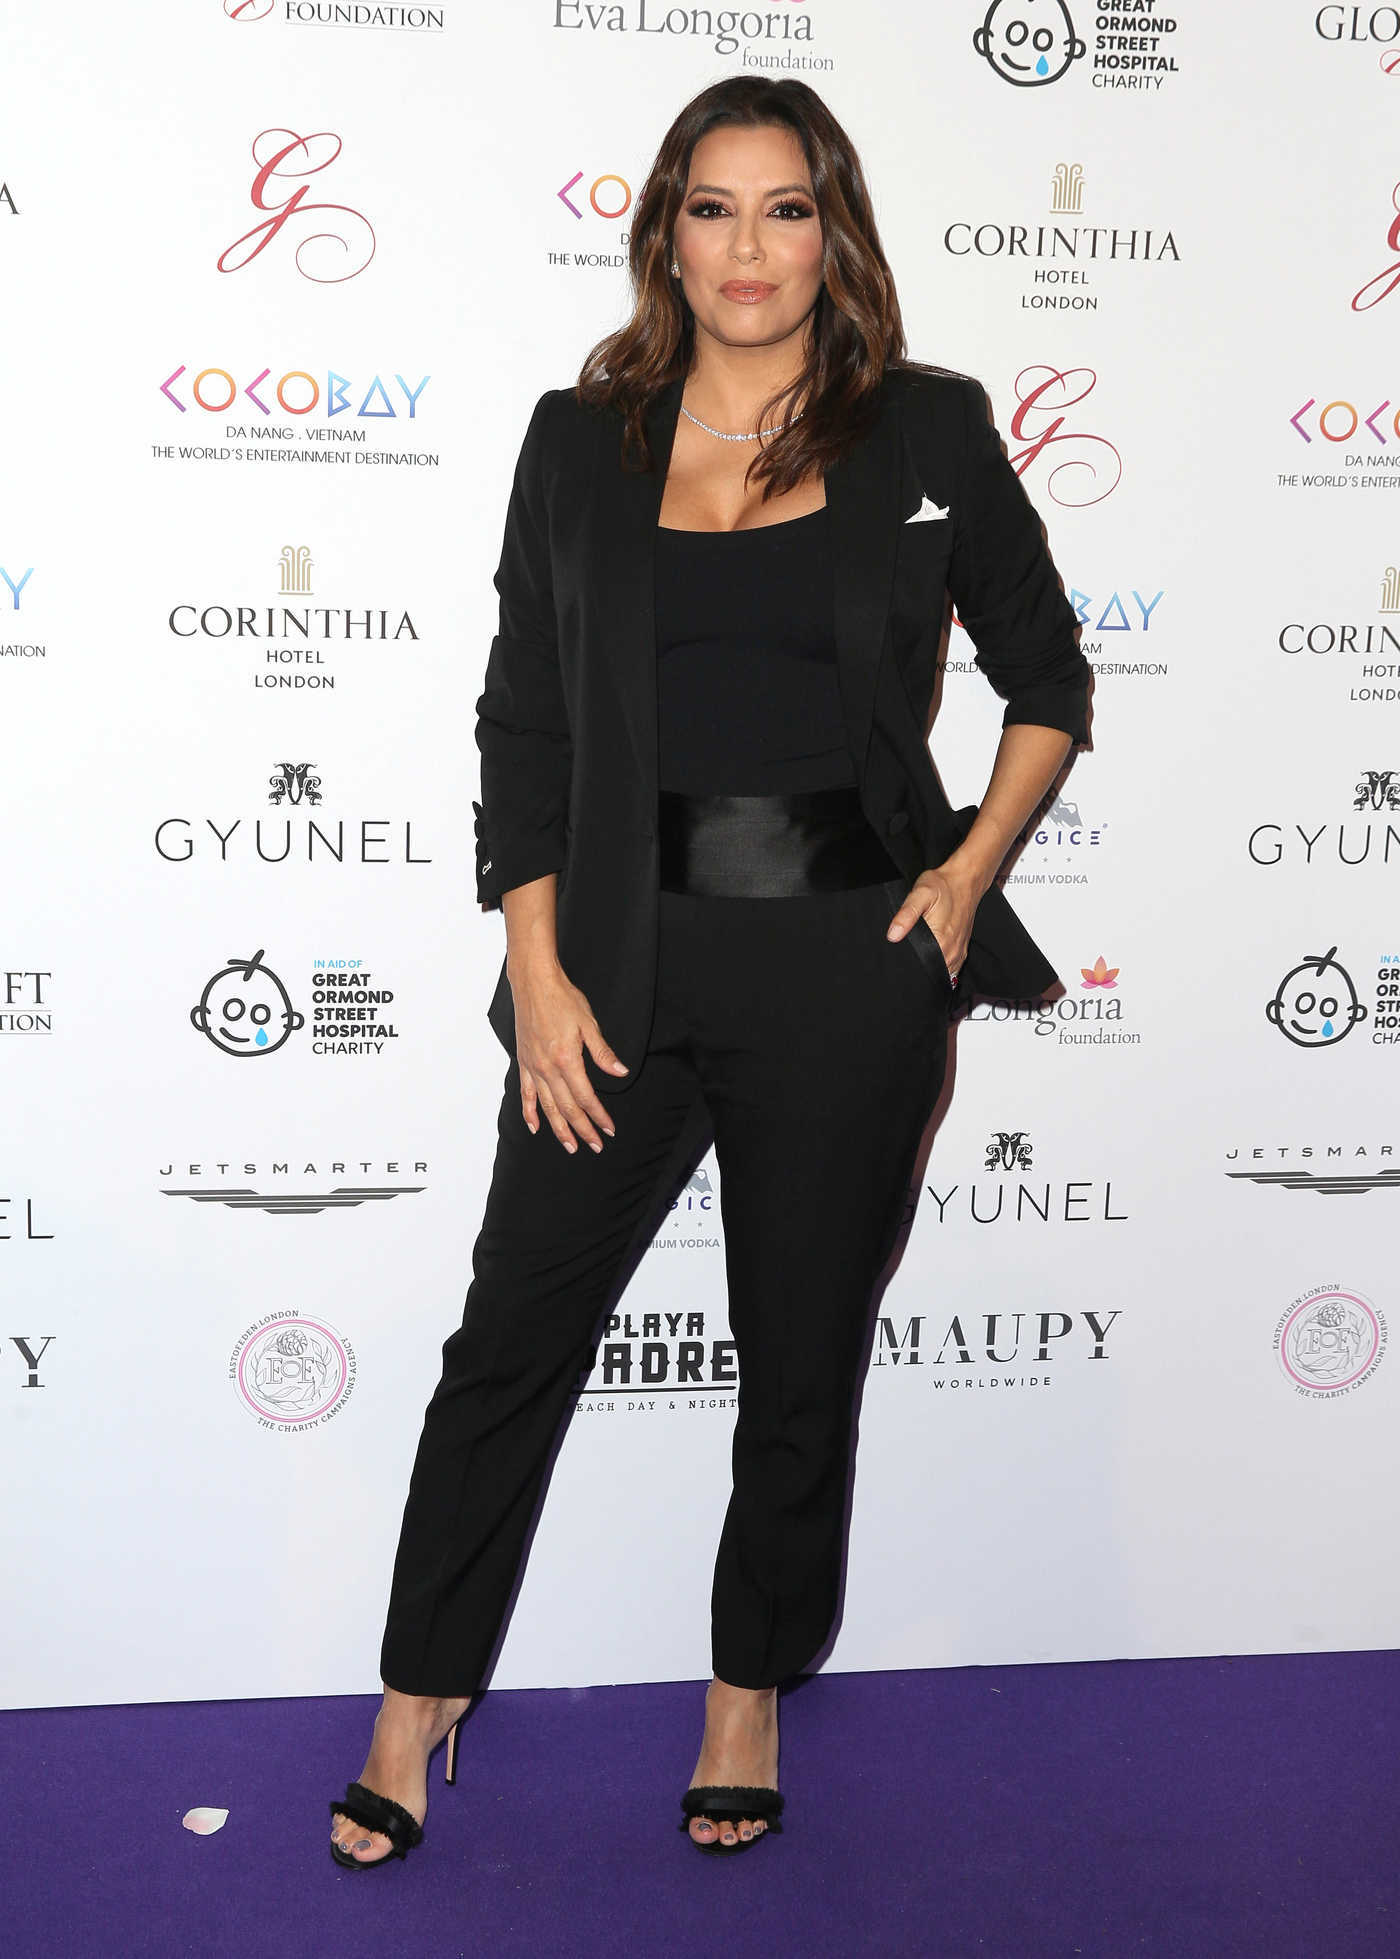 Eva Longoria at the 8th Global Gift Gala in Aid of Great Ormond Street Hospital Children's Charity in London 11/18/2017